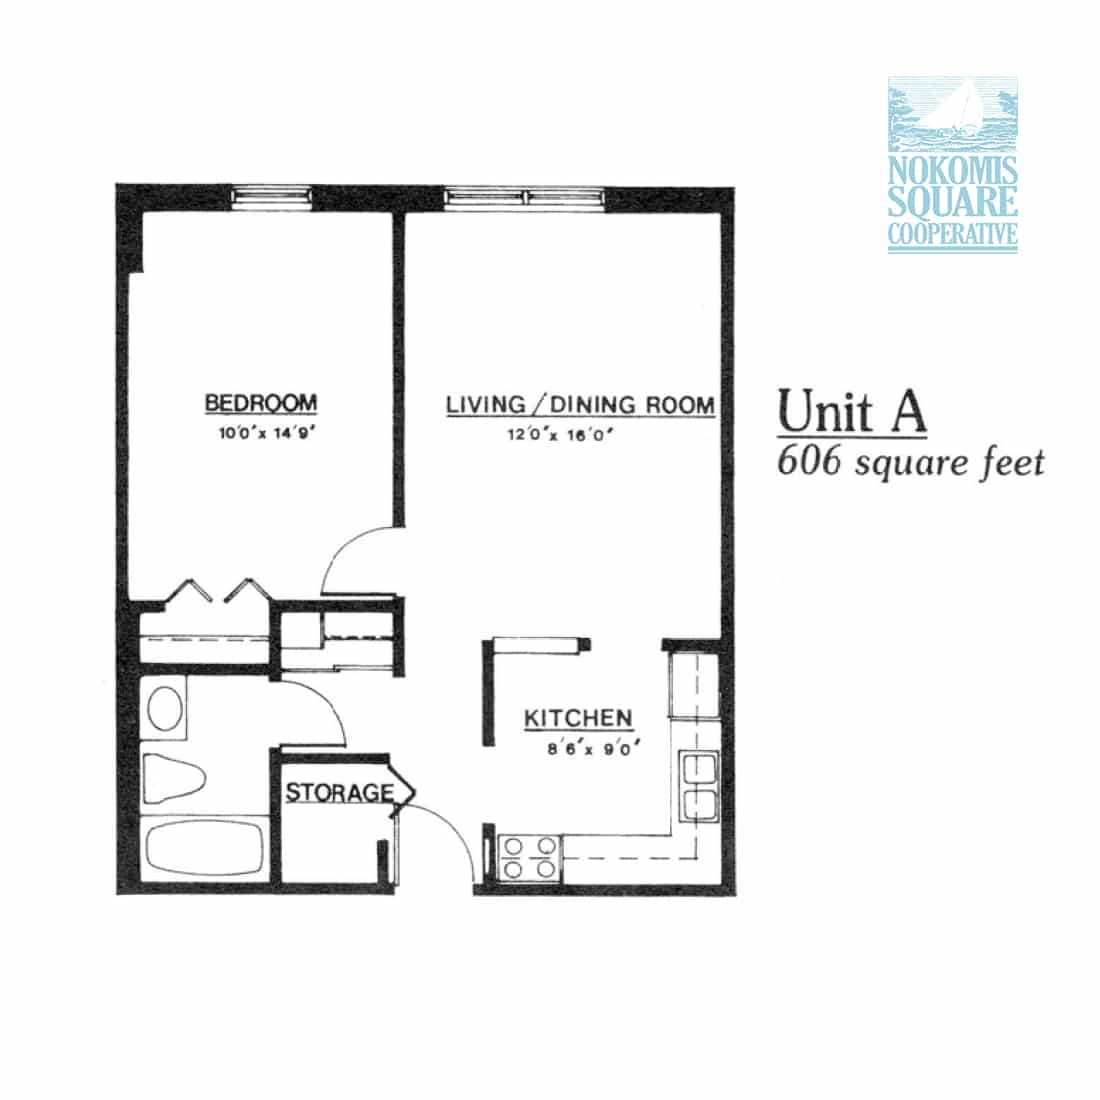 1 br Floorplan Unit A - Nokomis Square Senior Cooperative